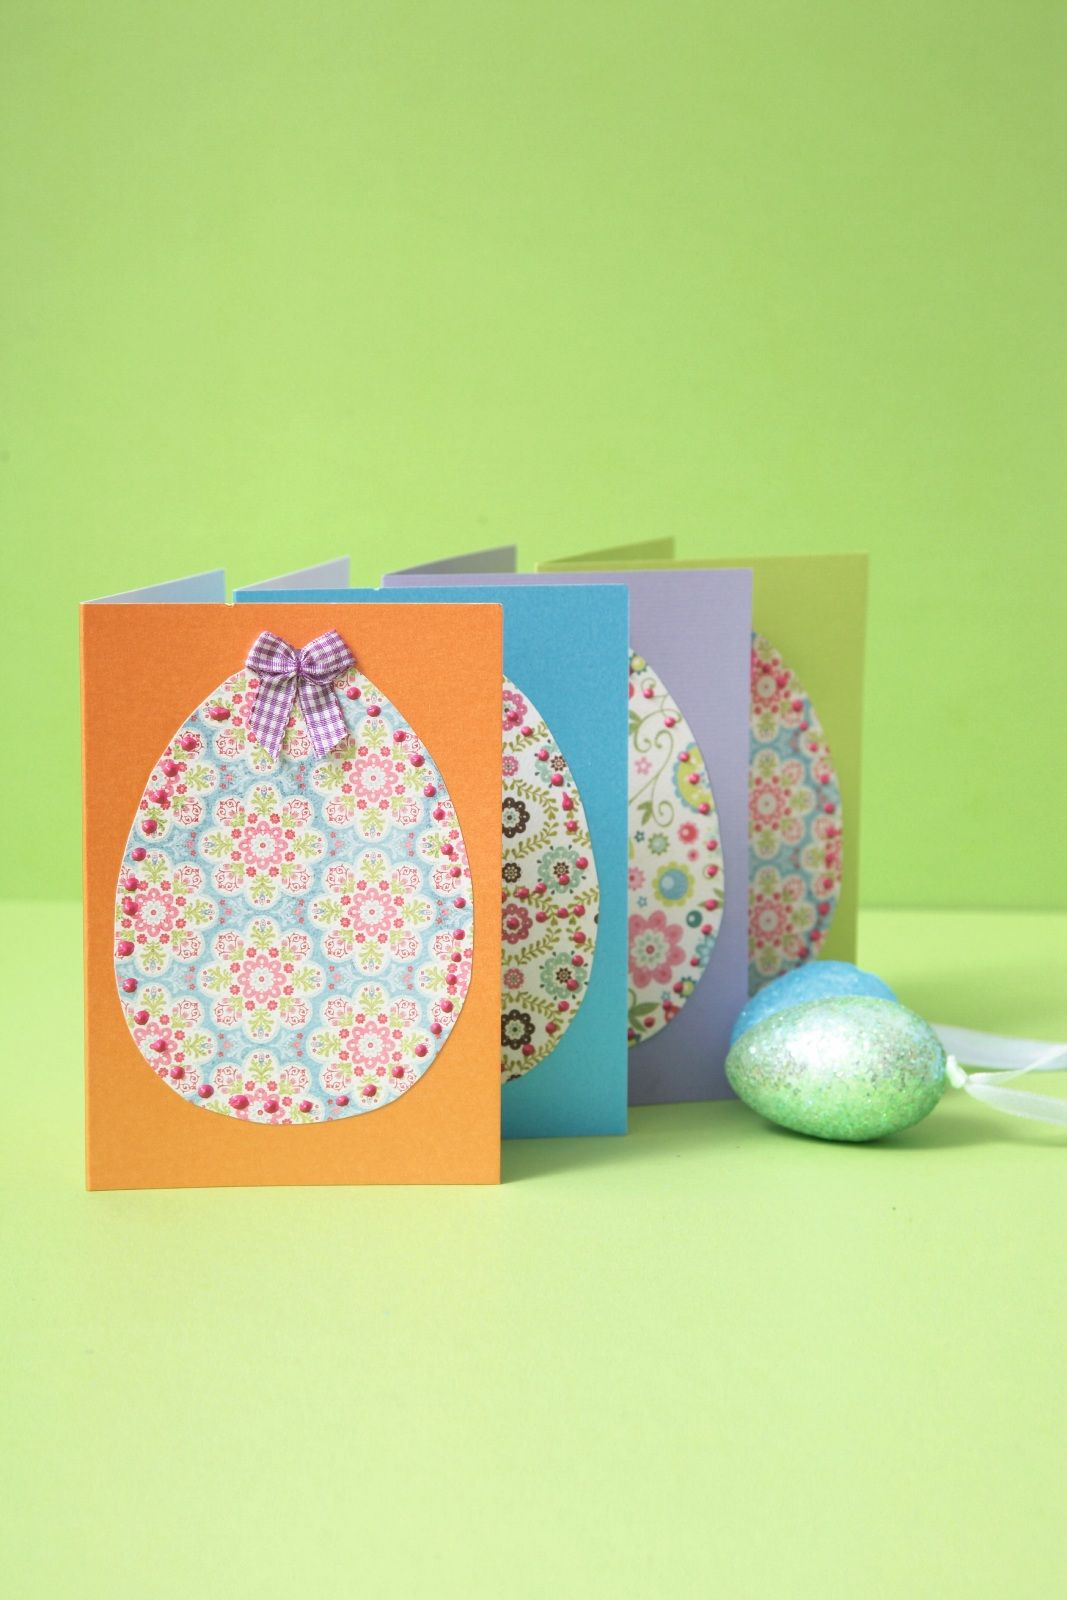 Nice Easter Card Ideas For Children To Make Part - 9: Easy Easter Crafts For Kids Cutout Egg Cards